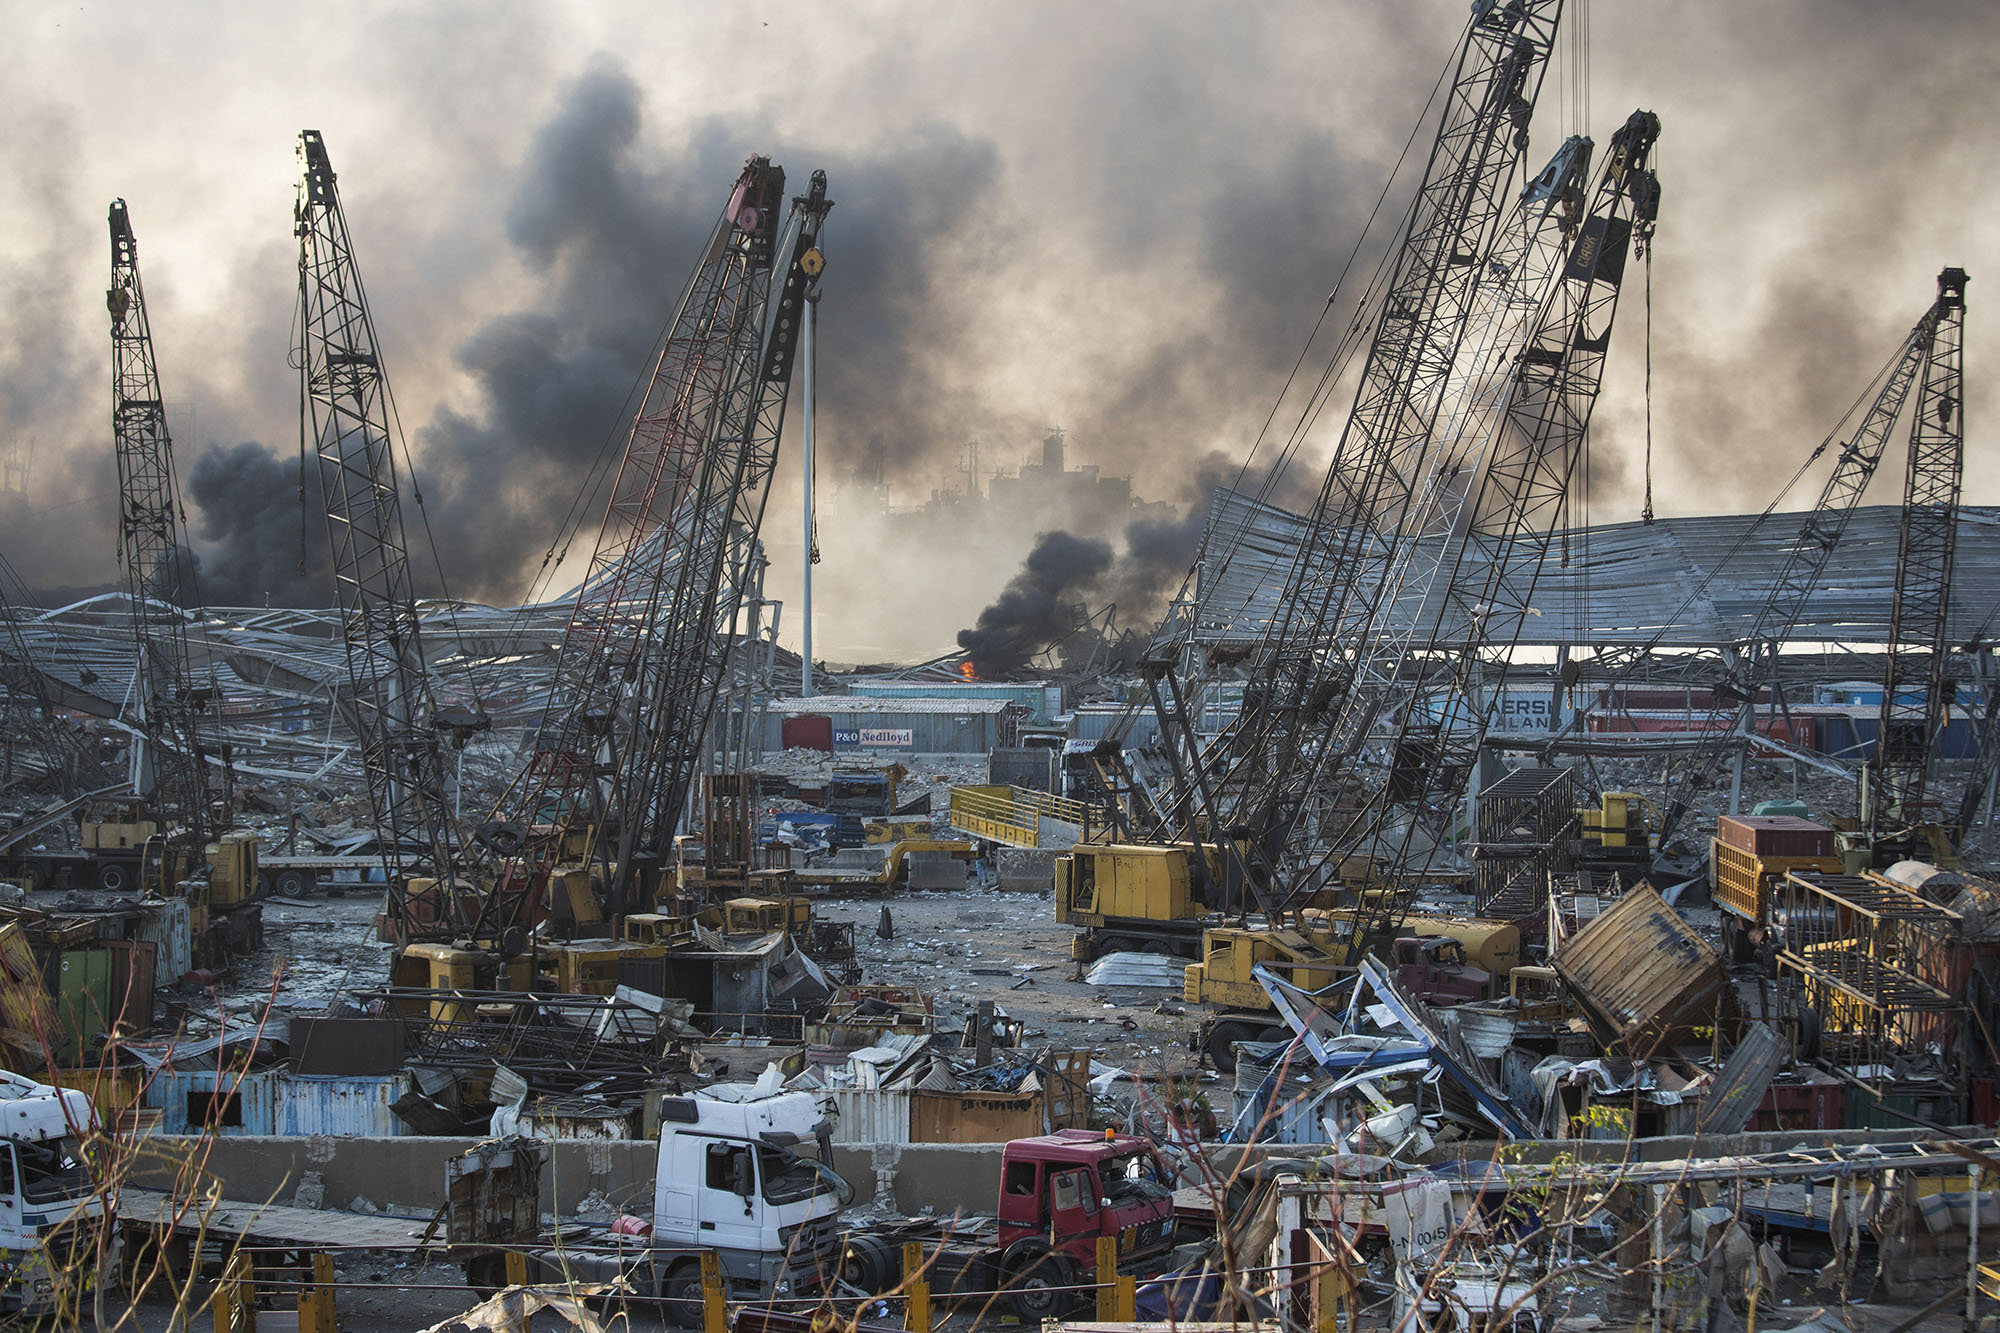 Smoke rises in the aftermath of a massive explosion in Beirut, Lebanon, on Tuesday, August 4.